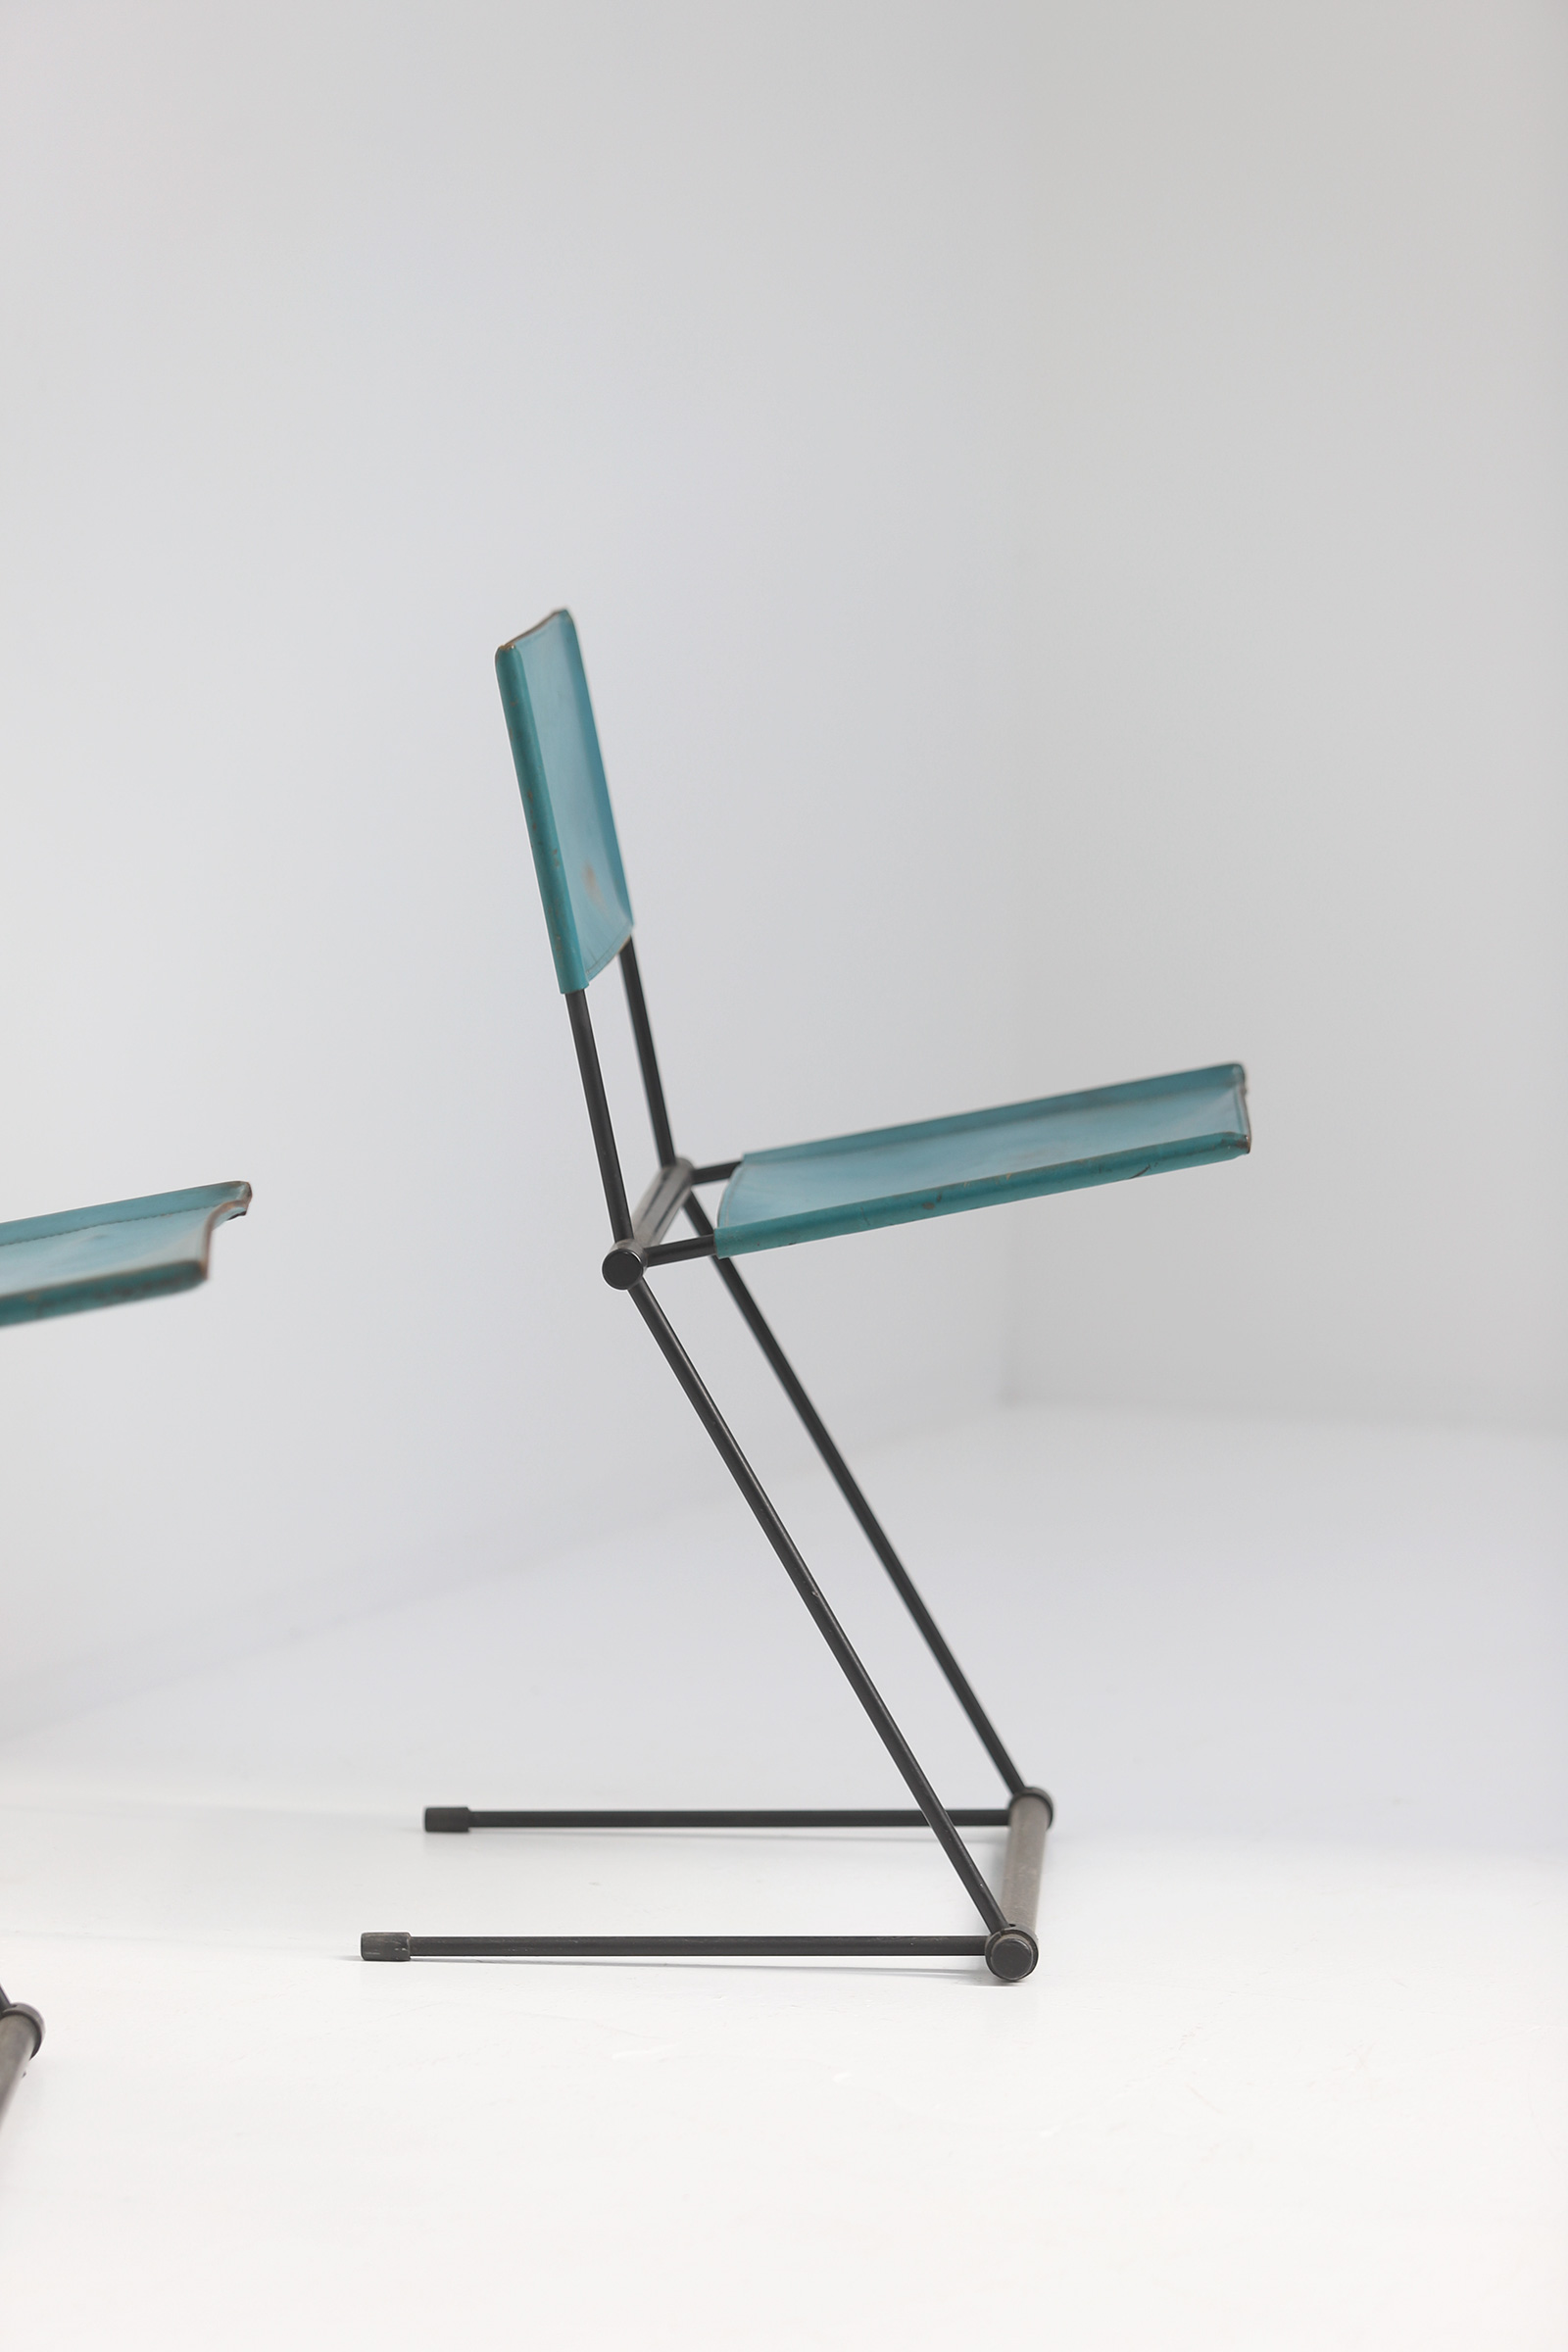 Ballerina Chairs By Herbert Ohl For Matteo Grassiimage 8